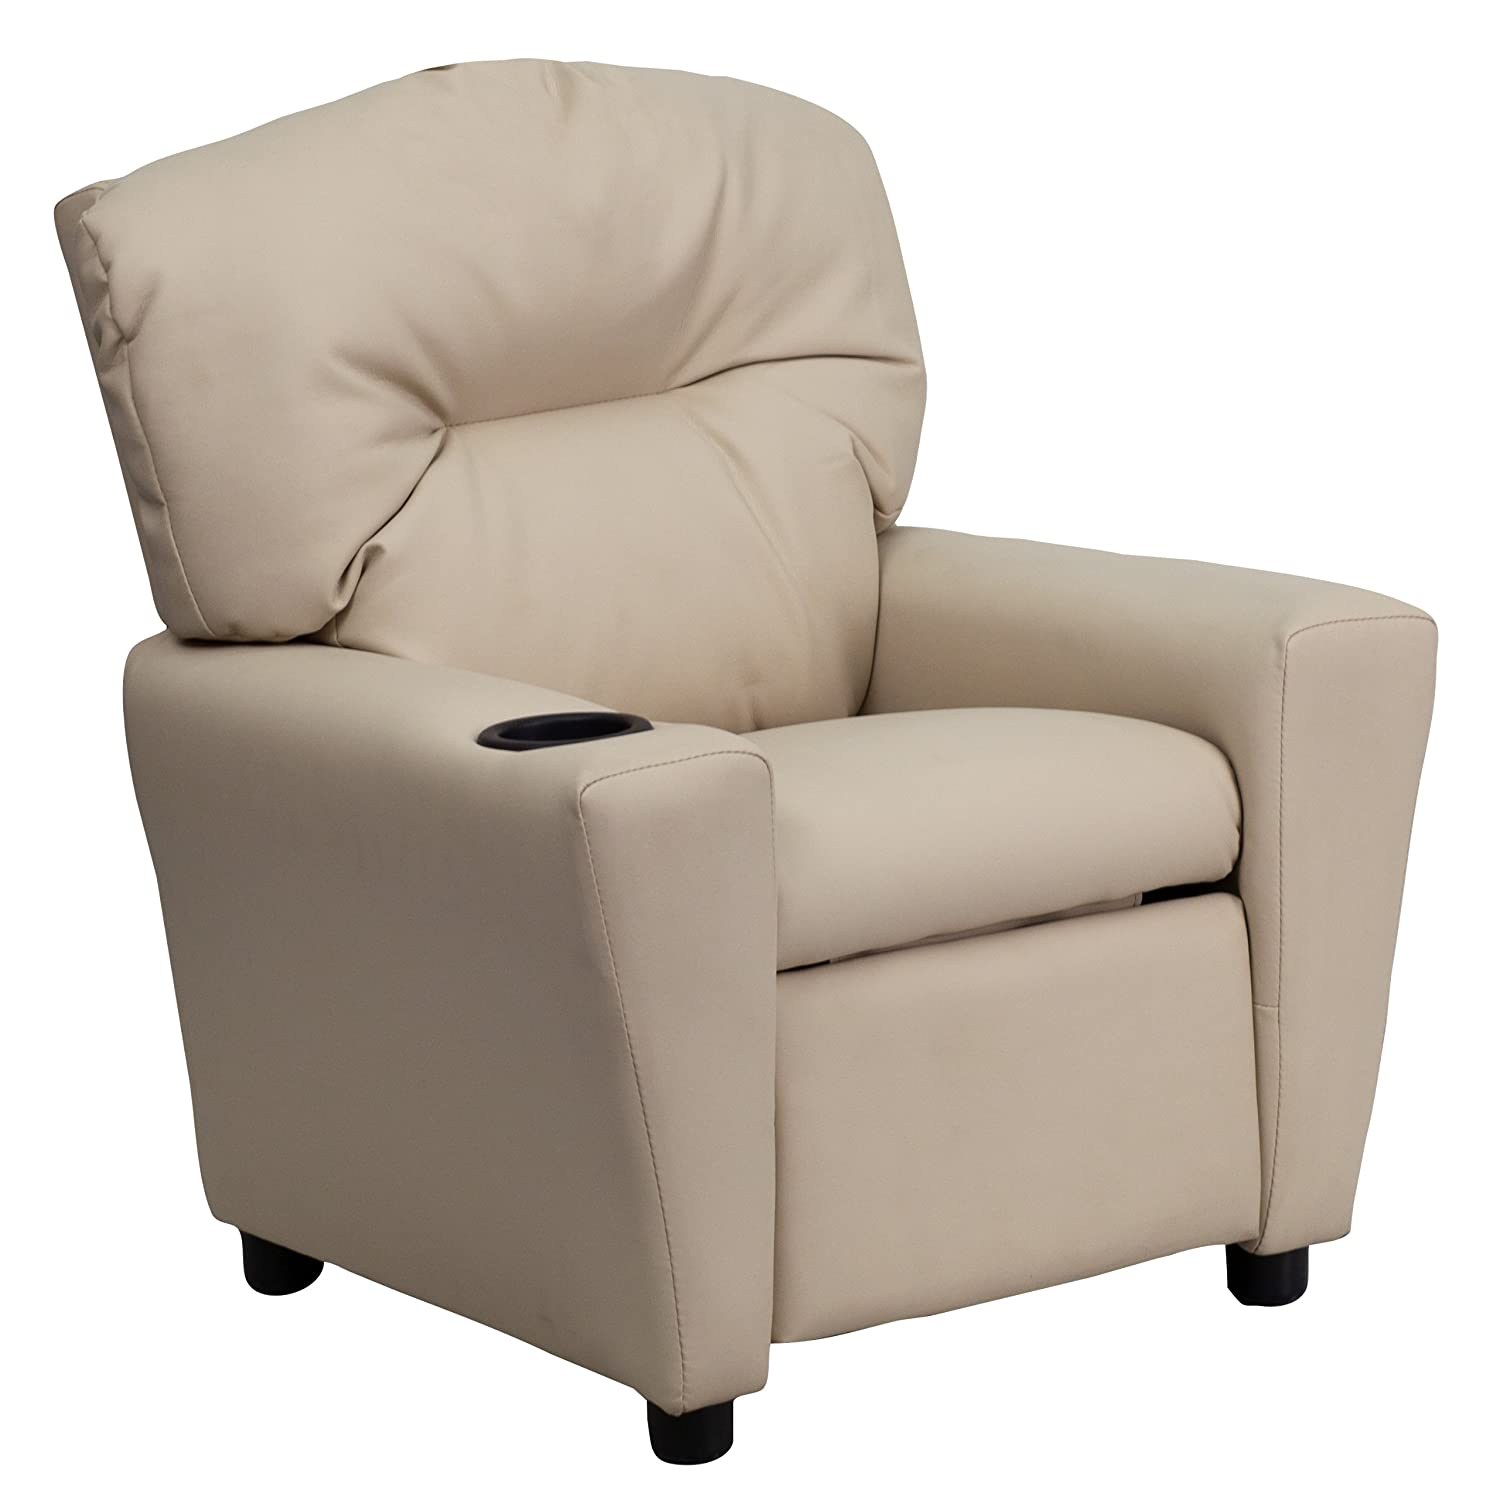 Delightful Amazon.com: Flash Furniture Contemporary Beige Vinyl Kids Recliner With Cup  Holder: Kitchen U0026 Dining